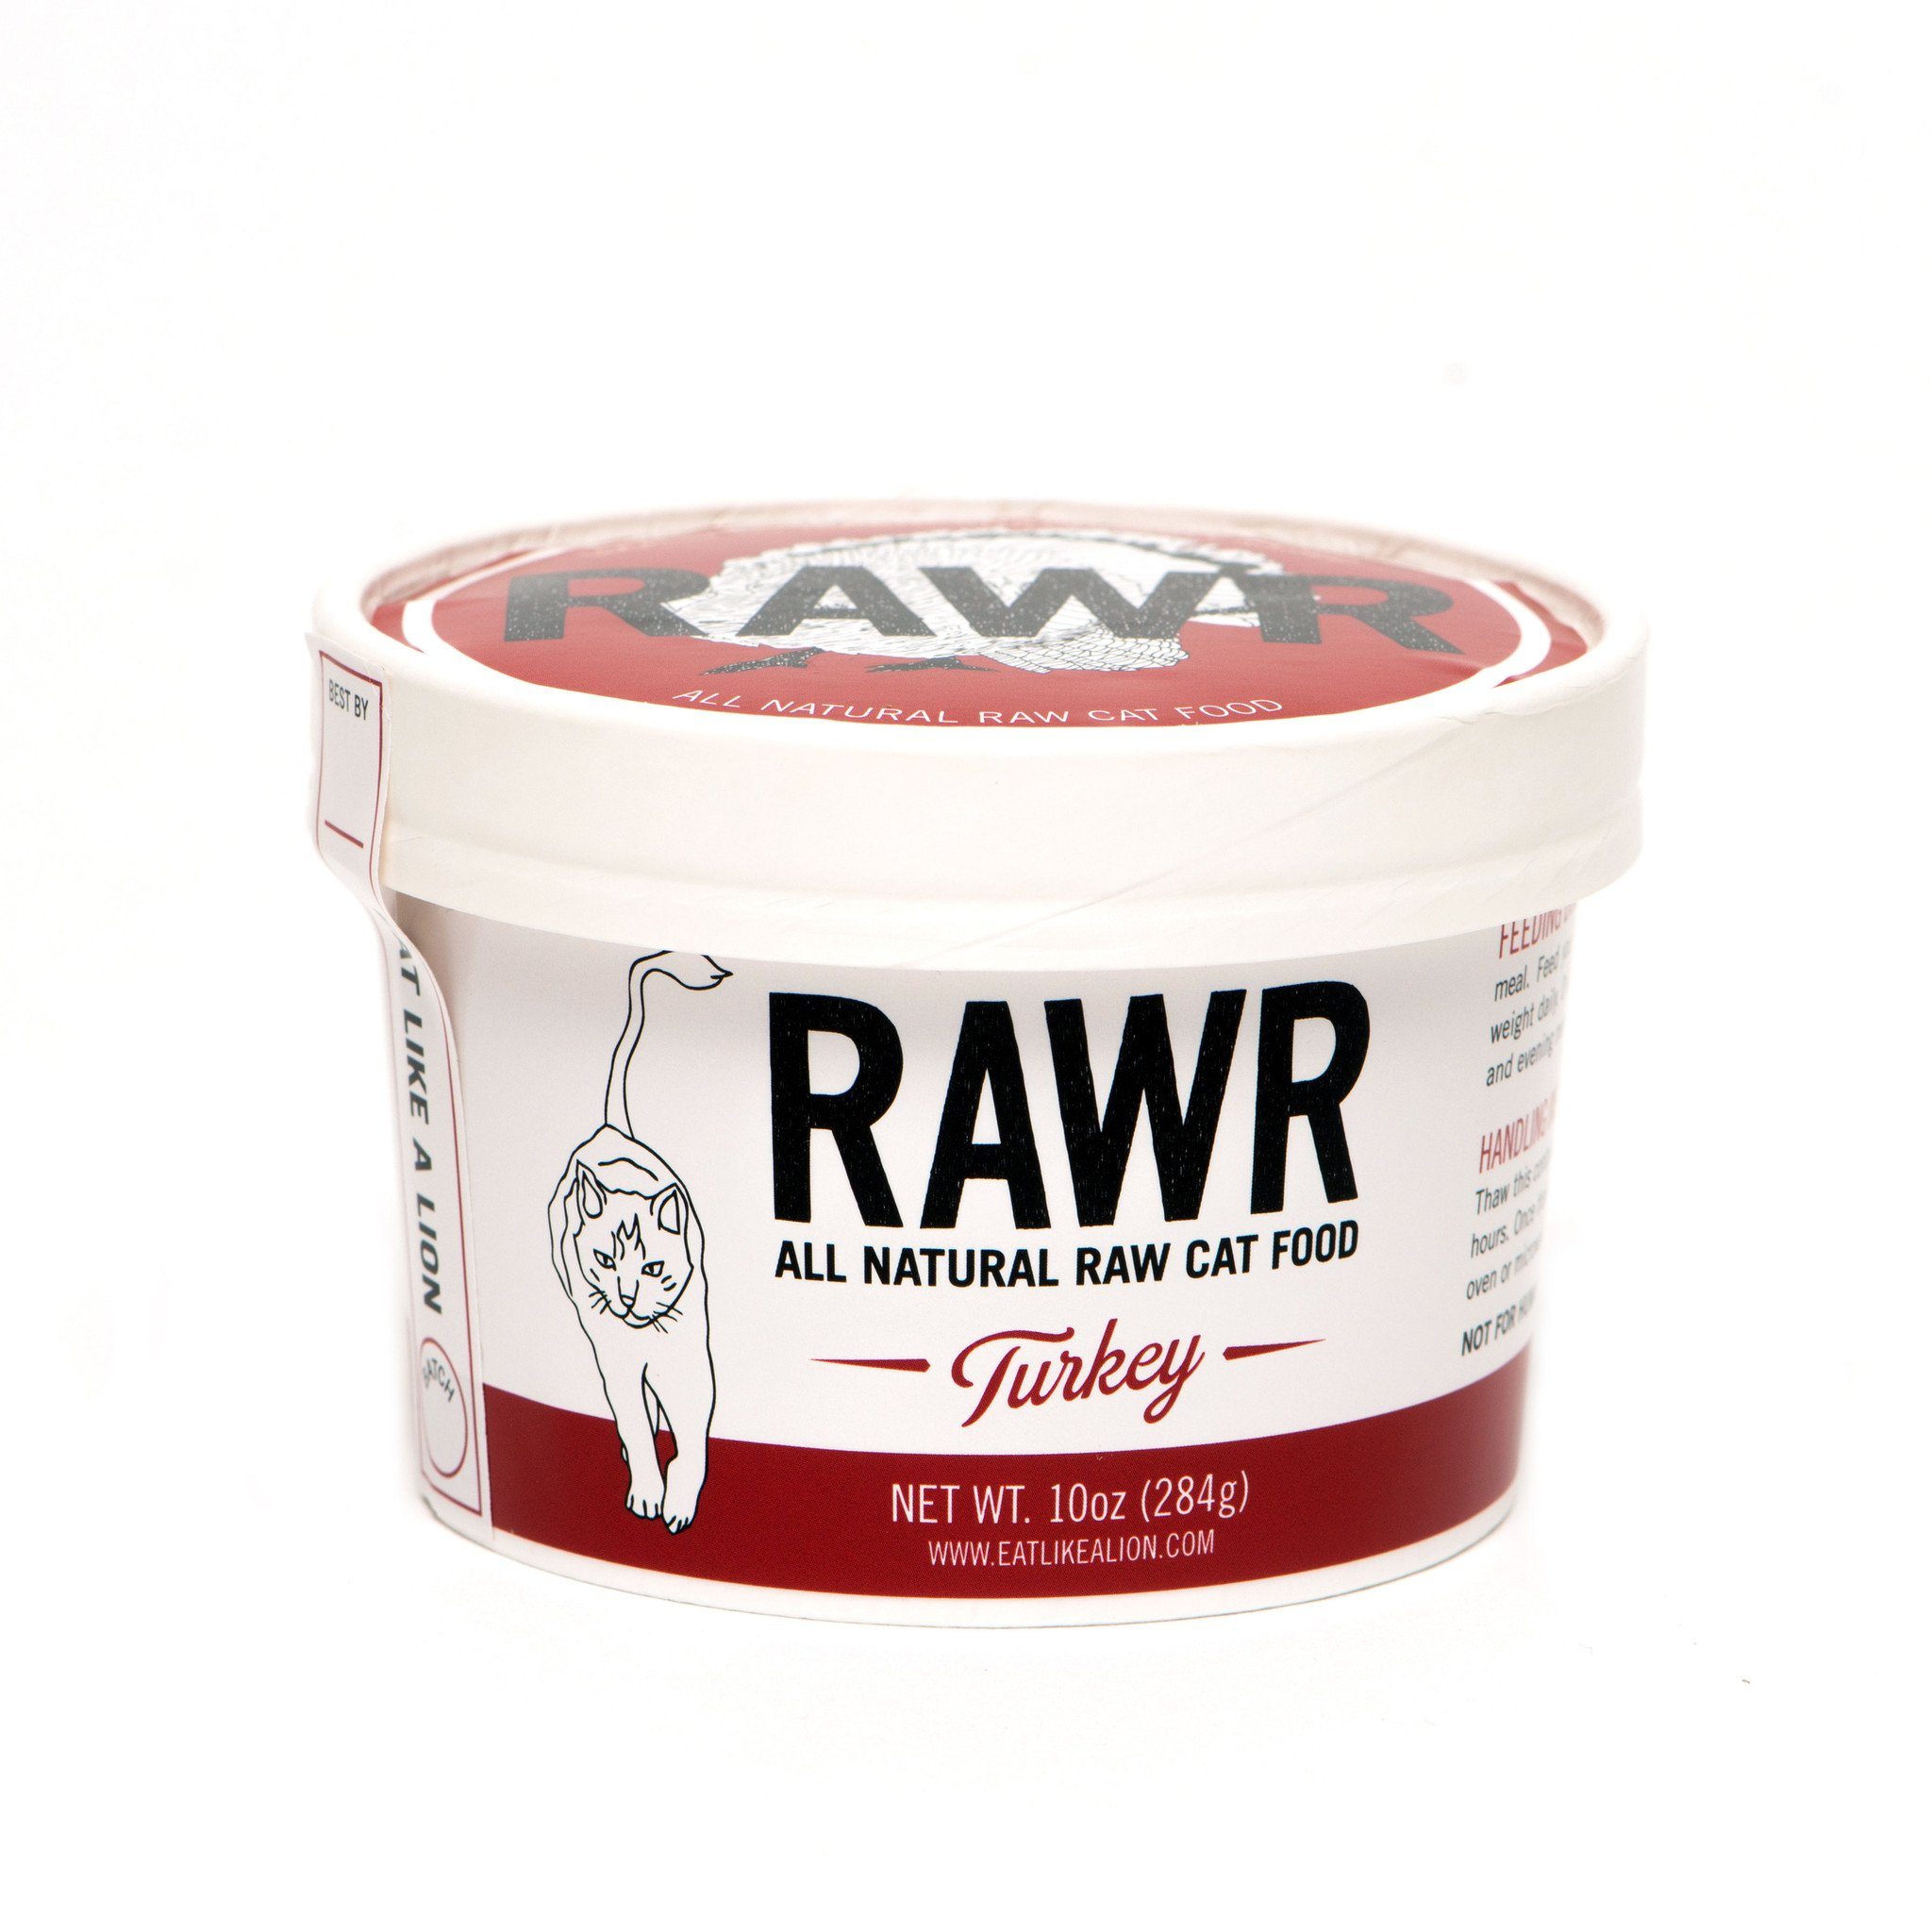 RAWR All Natural Turkey Raw Frozen Cat Food, 32-oz